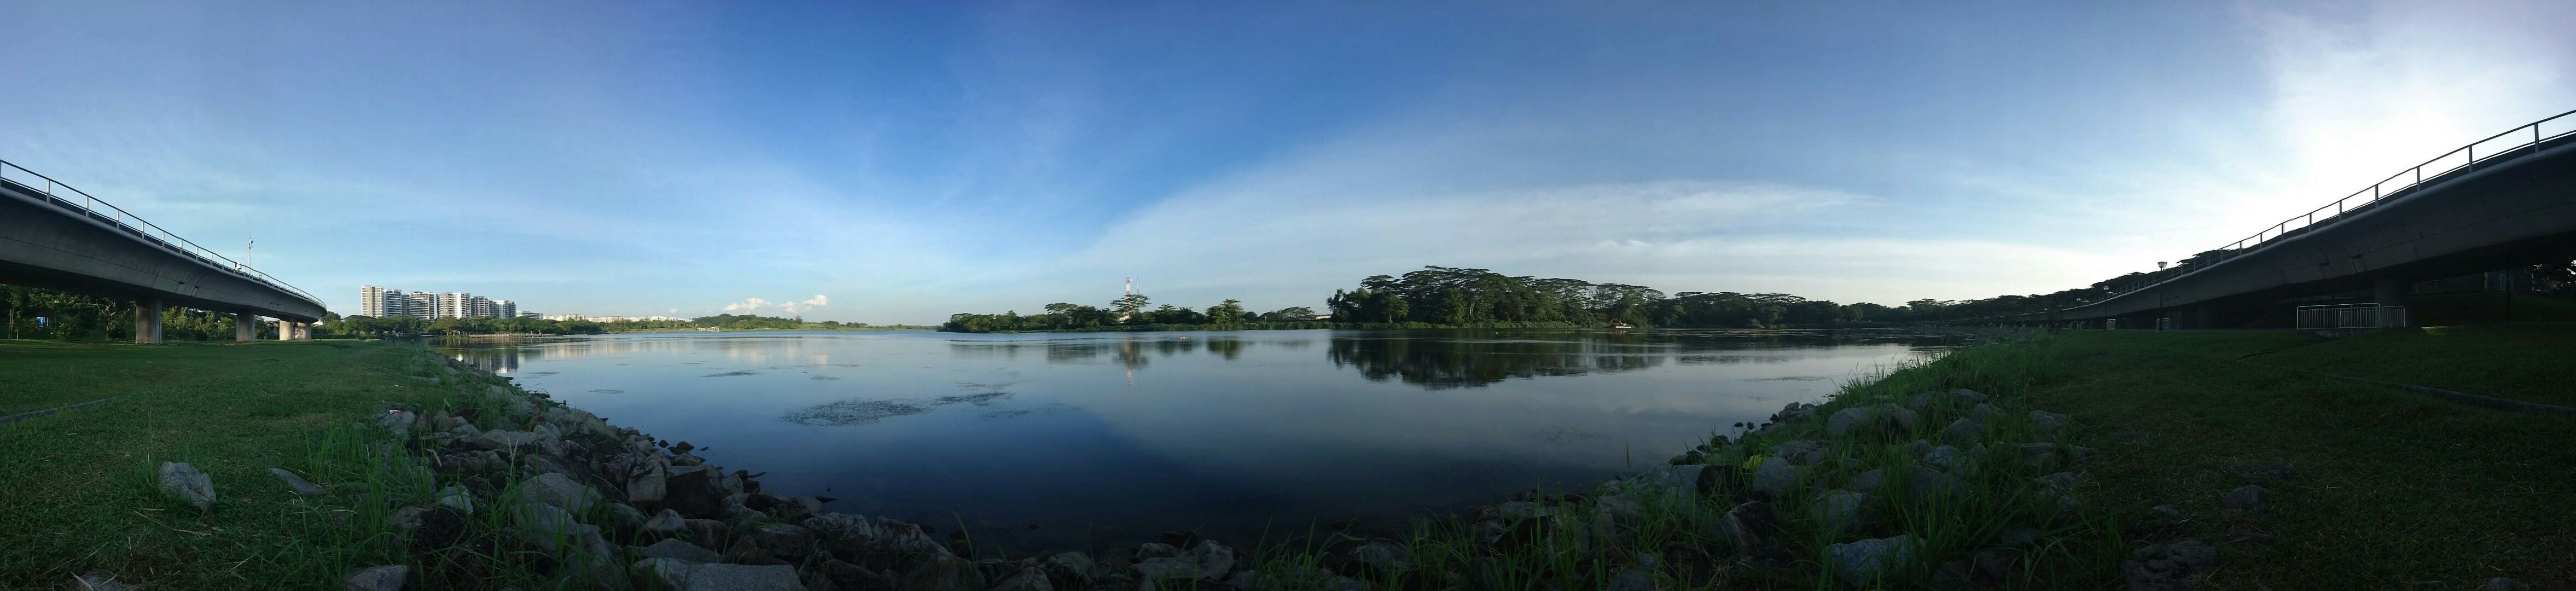 Reflejo en Lower Seletar Reservoir